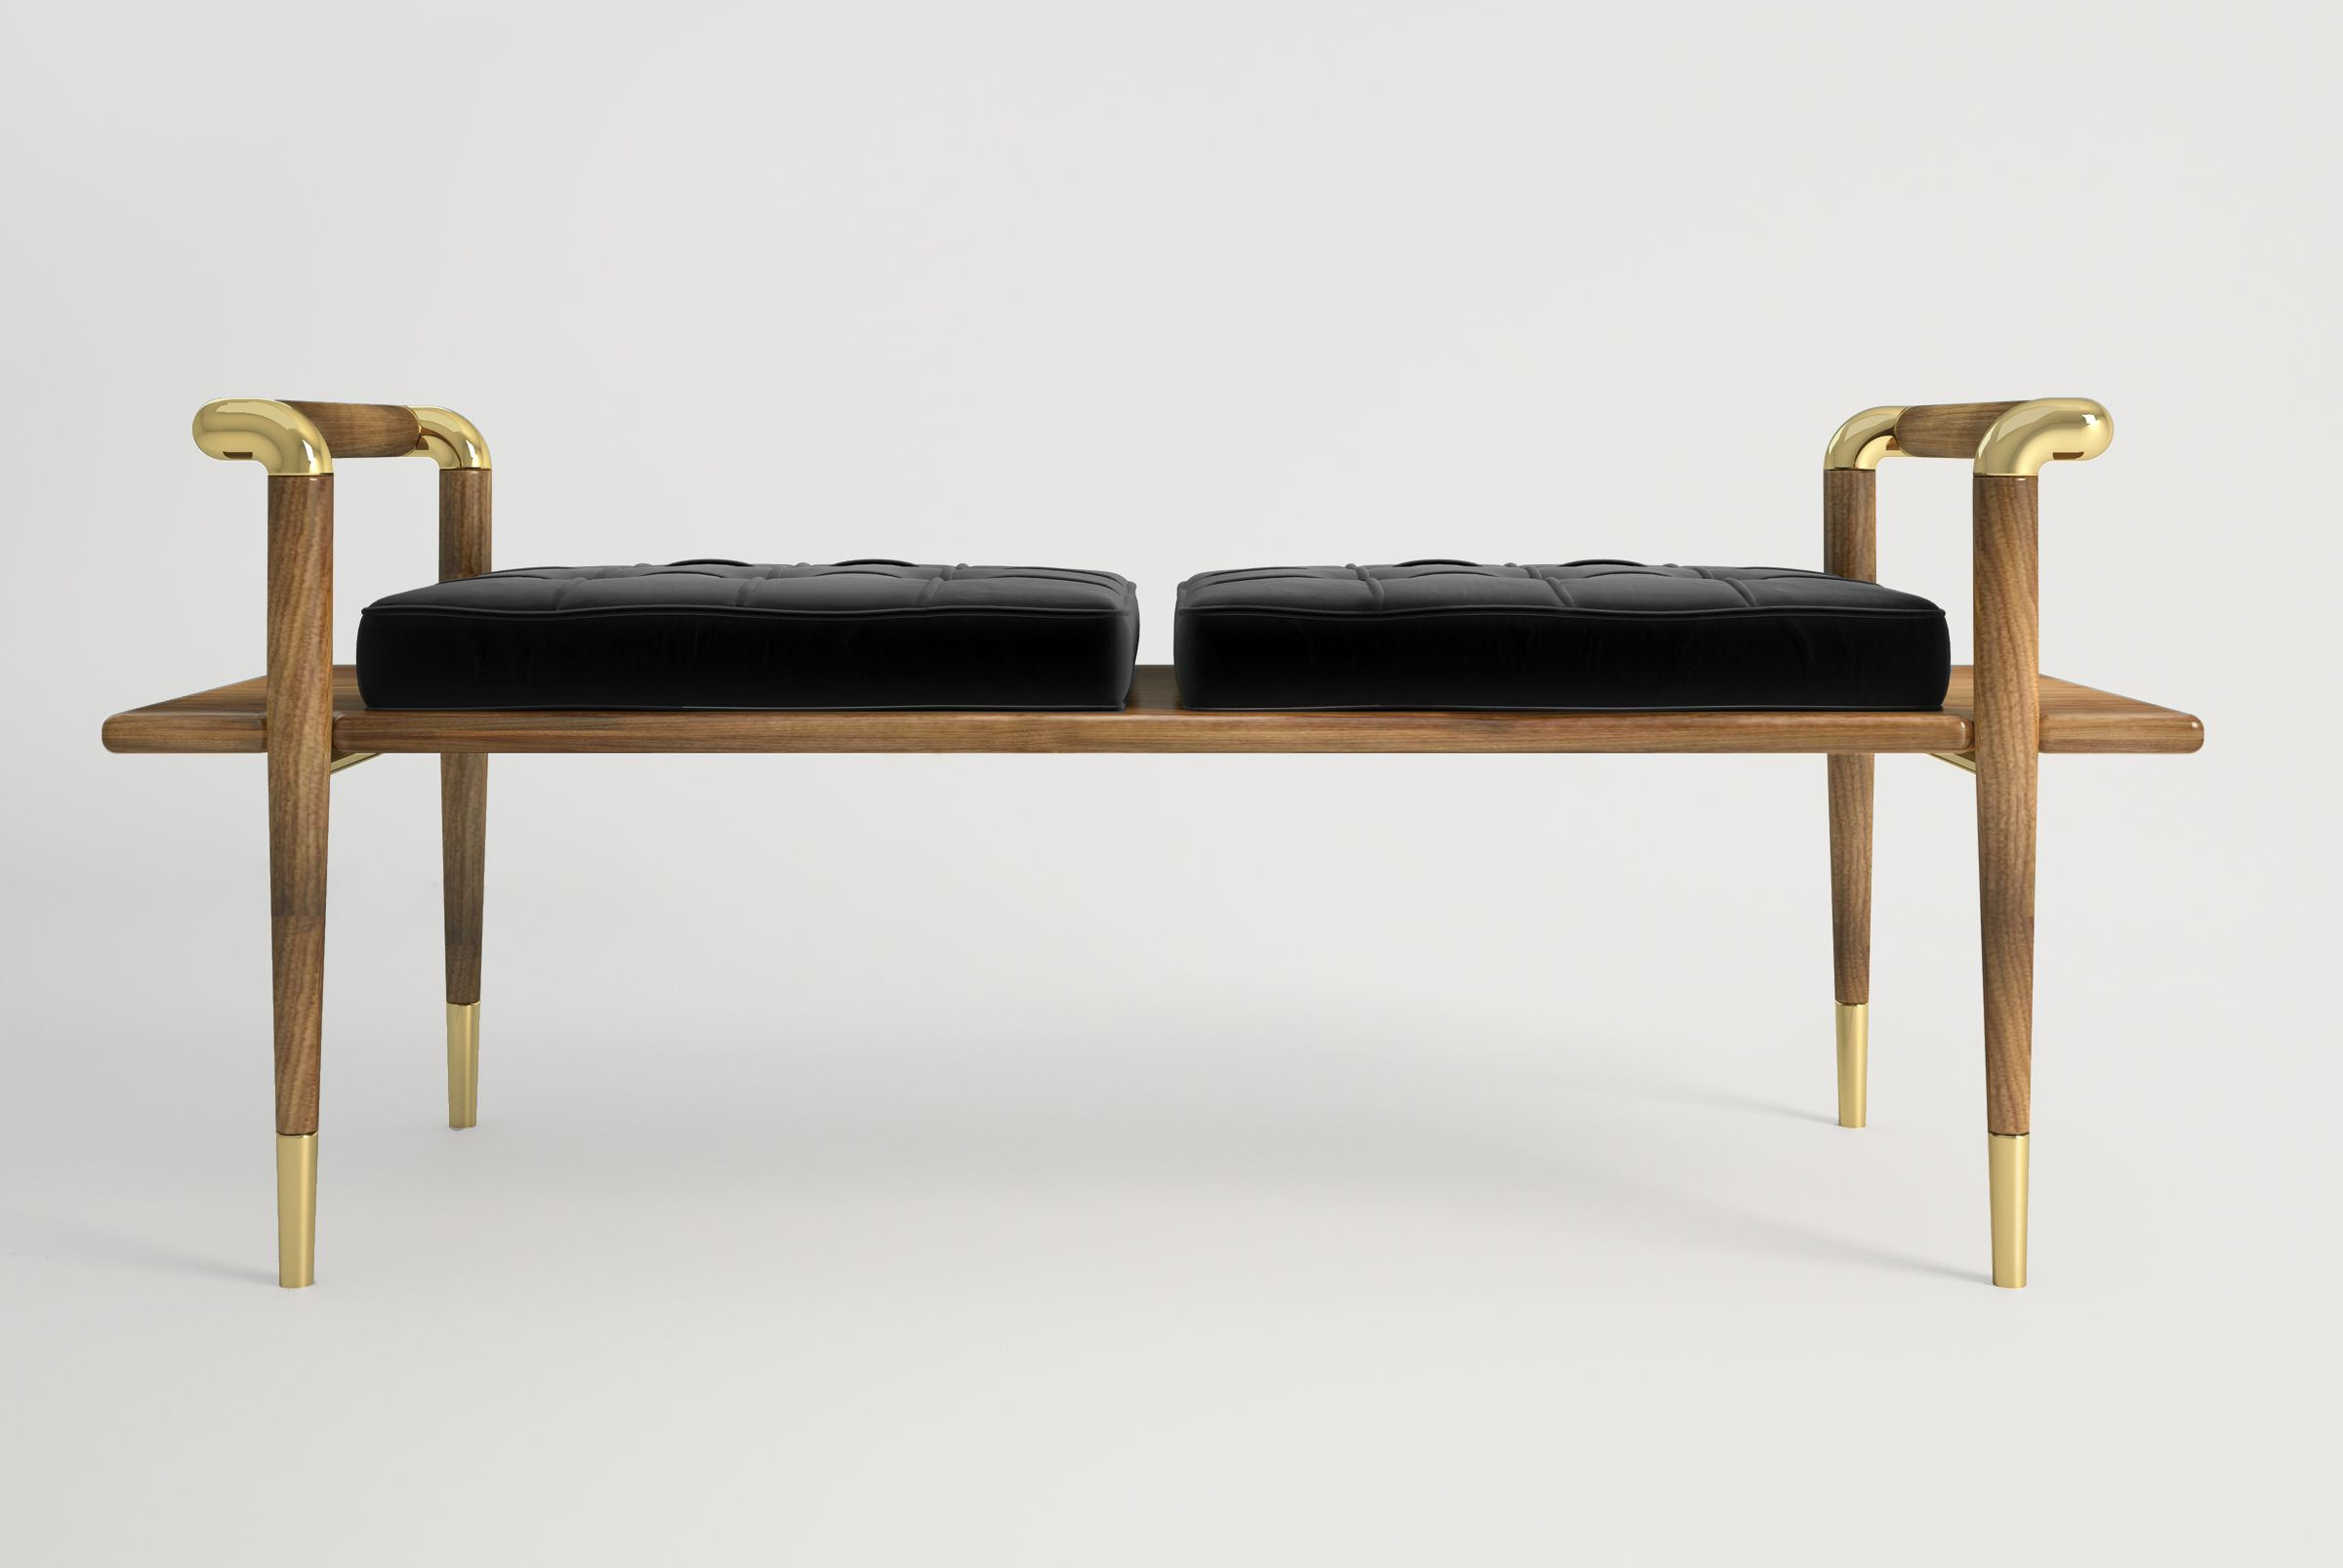 Stylish And Practical Contemporary Furniture For Every: Contemporary Furniture Piece With Straight